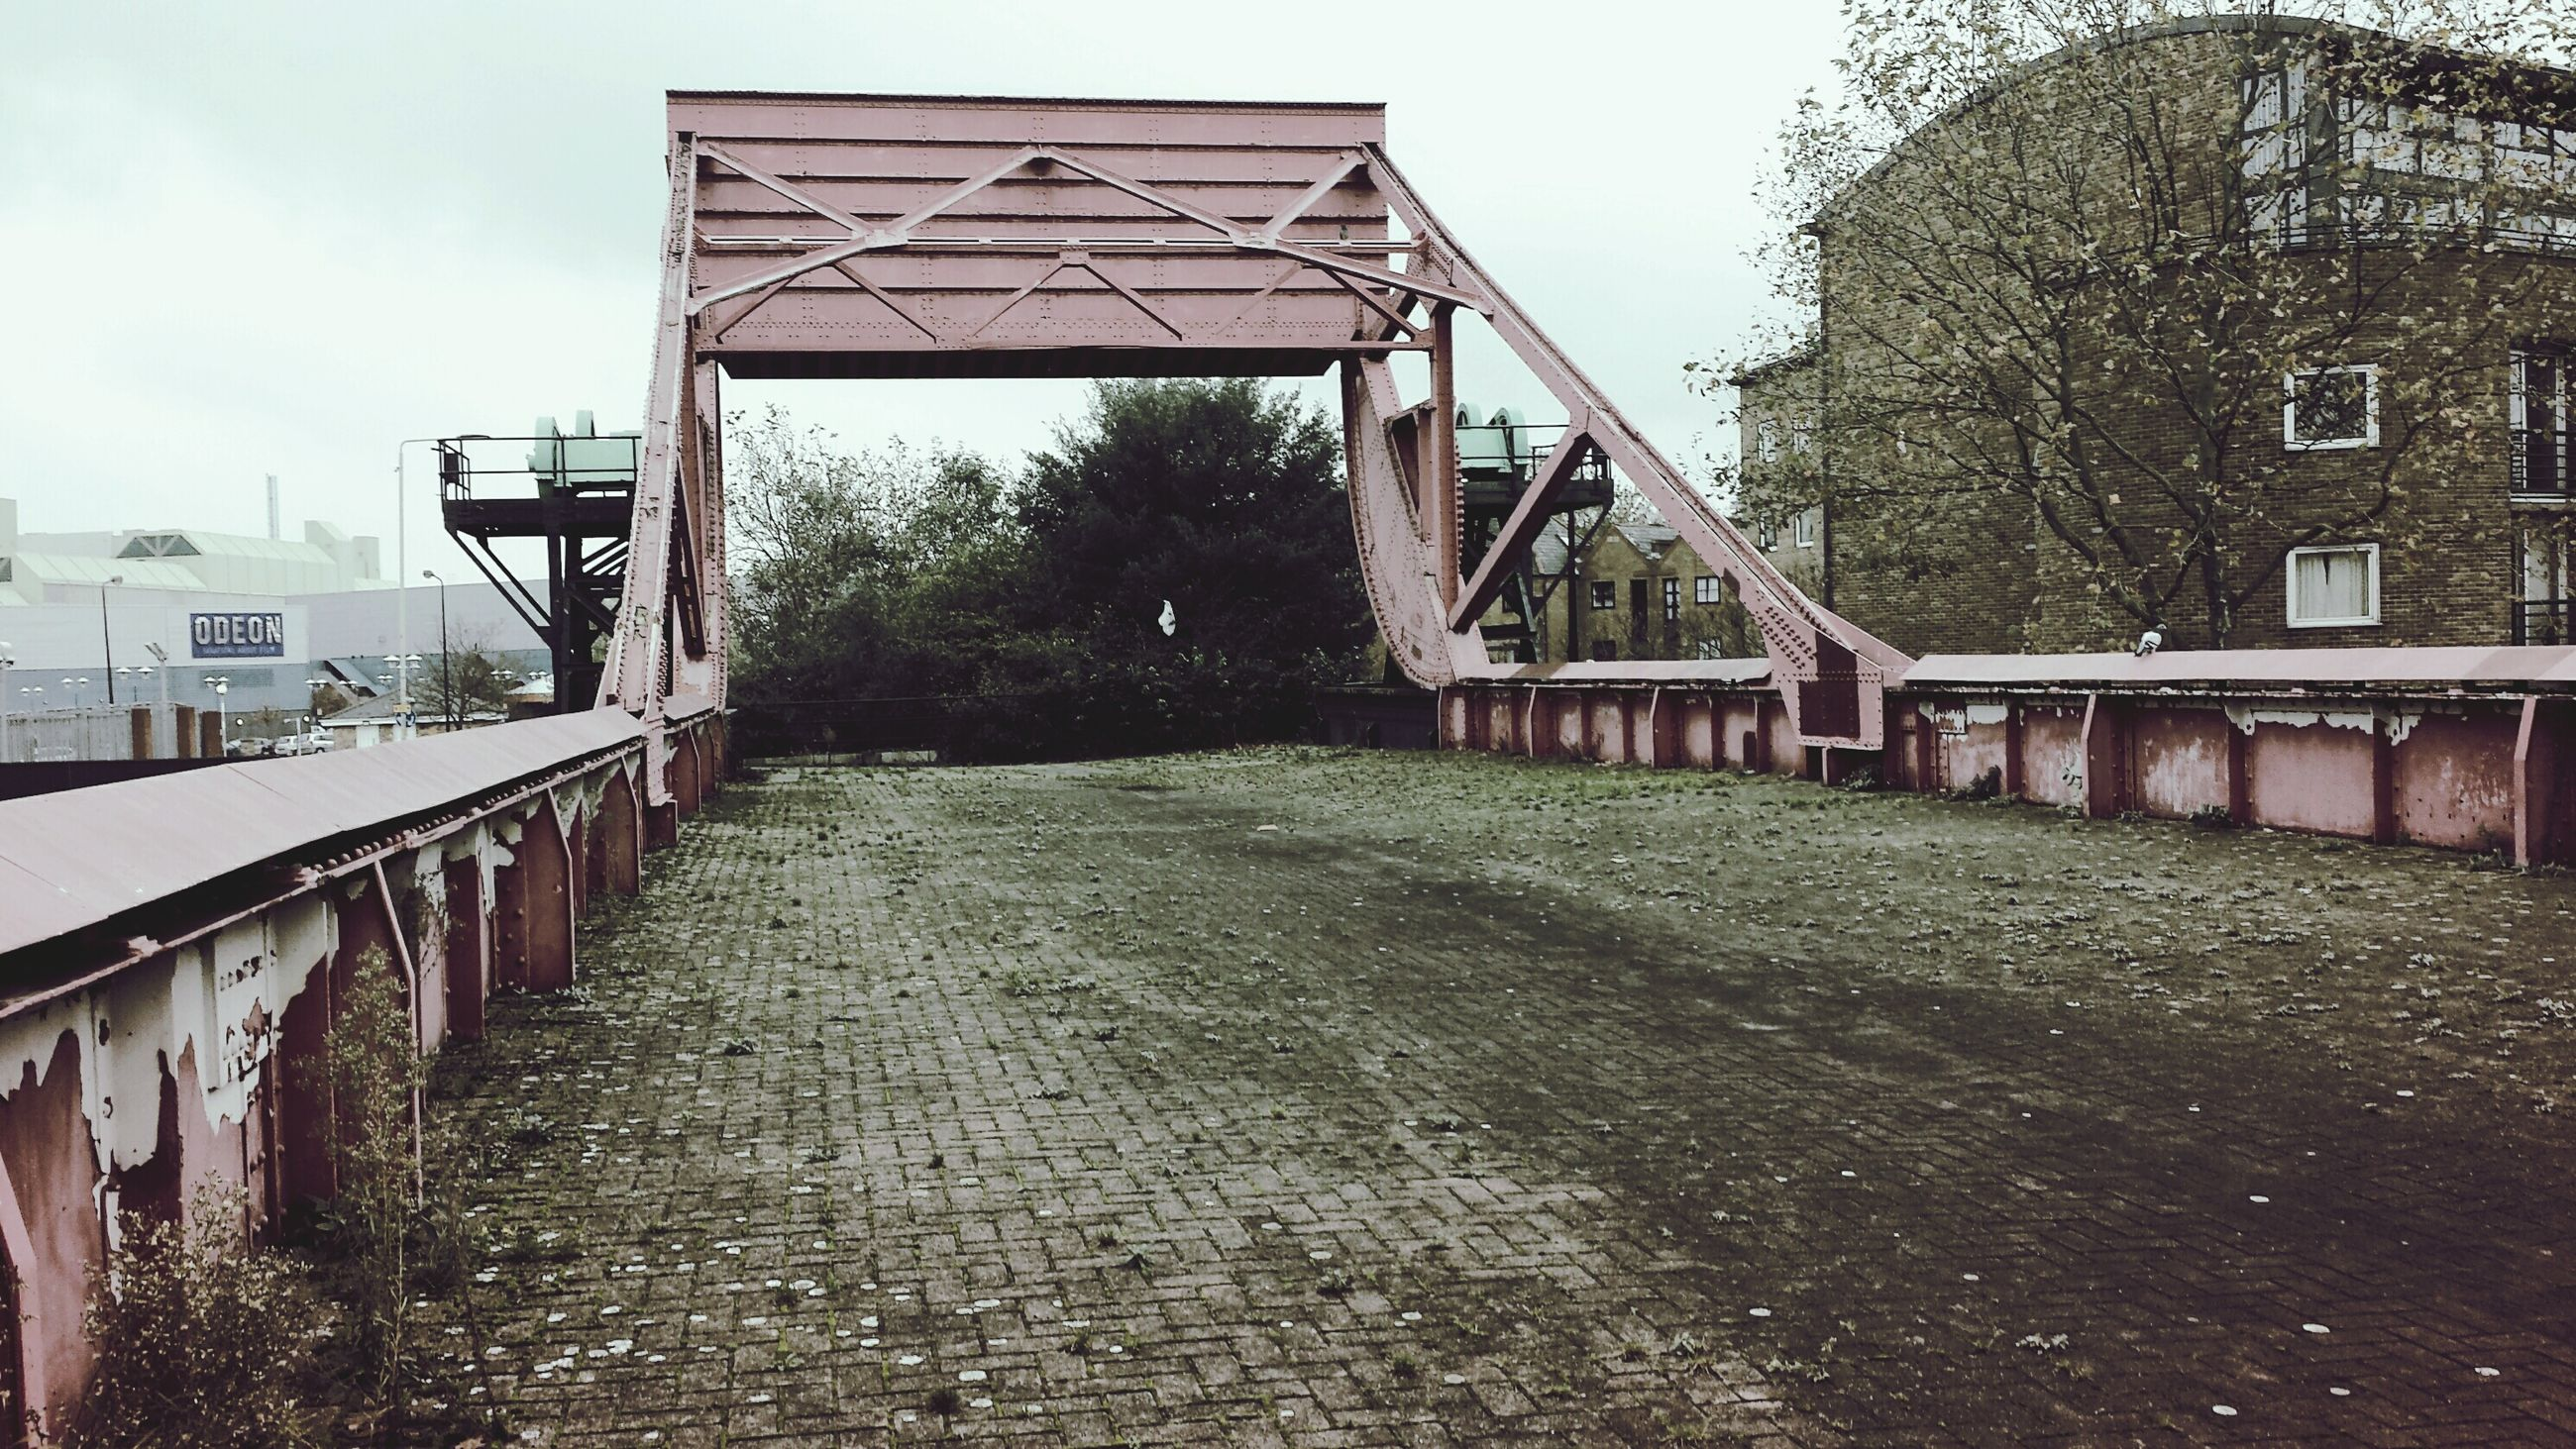 architecture, built structure, building exterior, house, residential structure, residential building, railing, the way forward, sky, day, outdoors, tree, diminishing perspective, no people, canal, walkway, street, building, roof, city